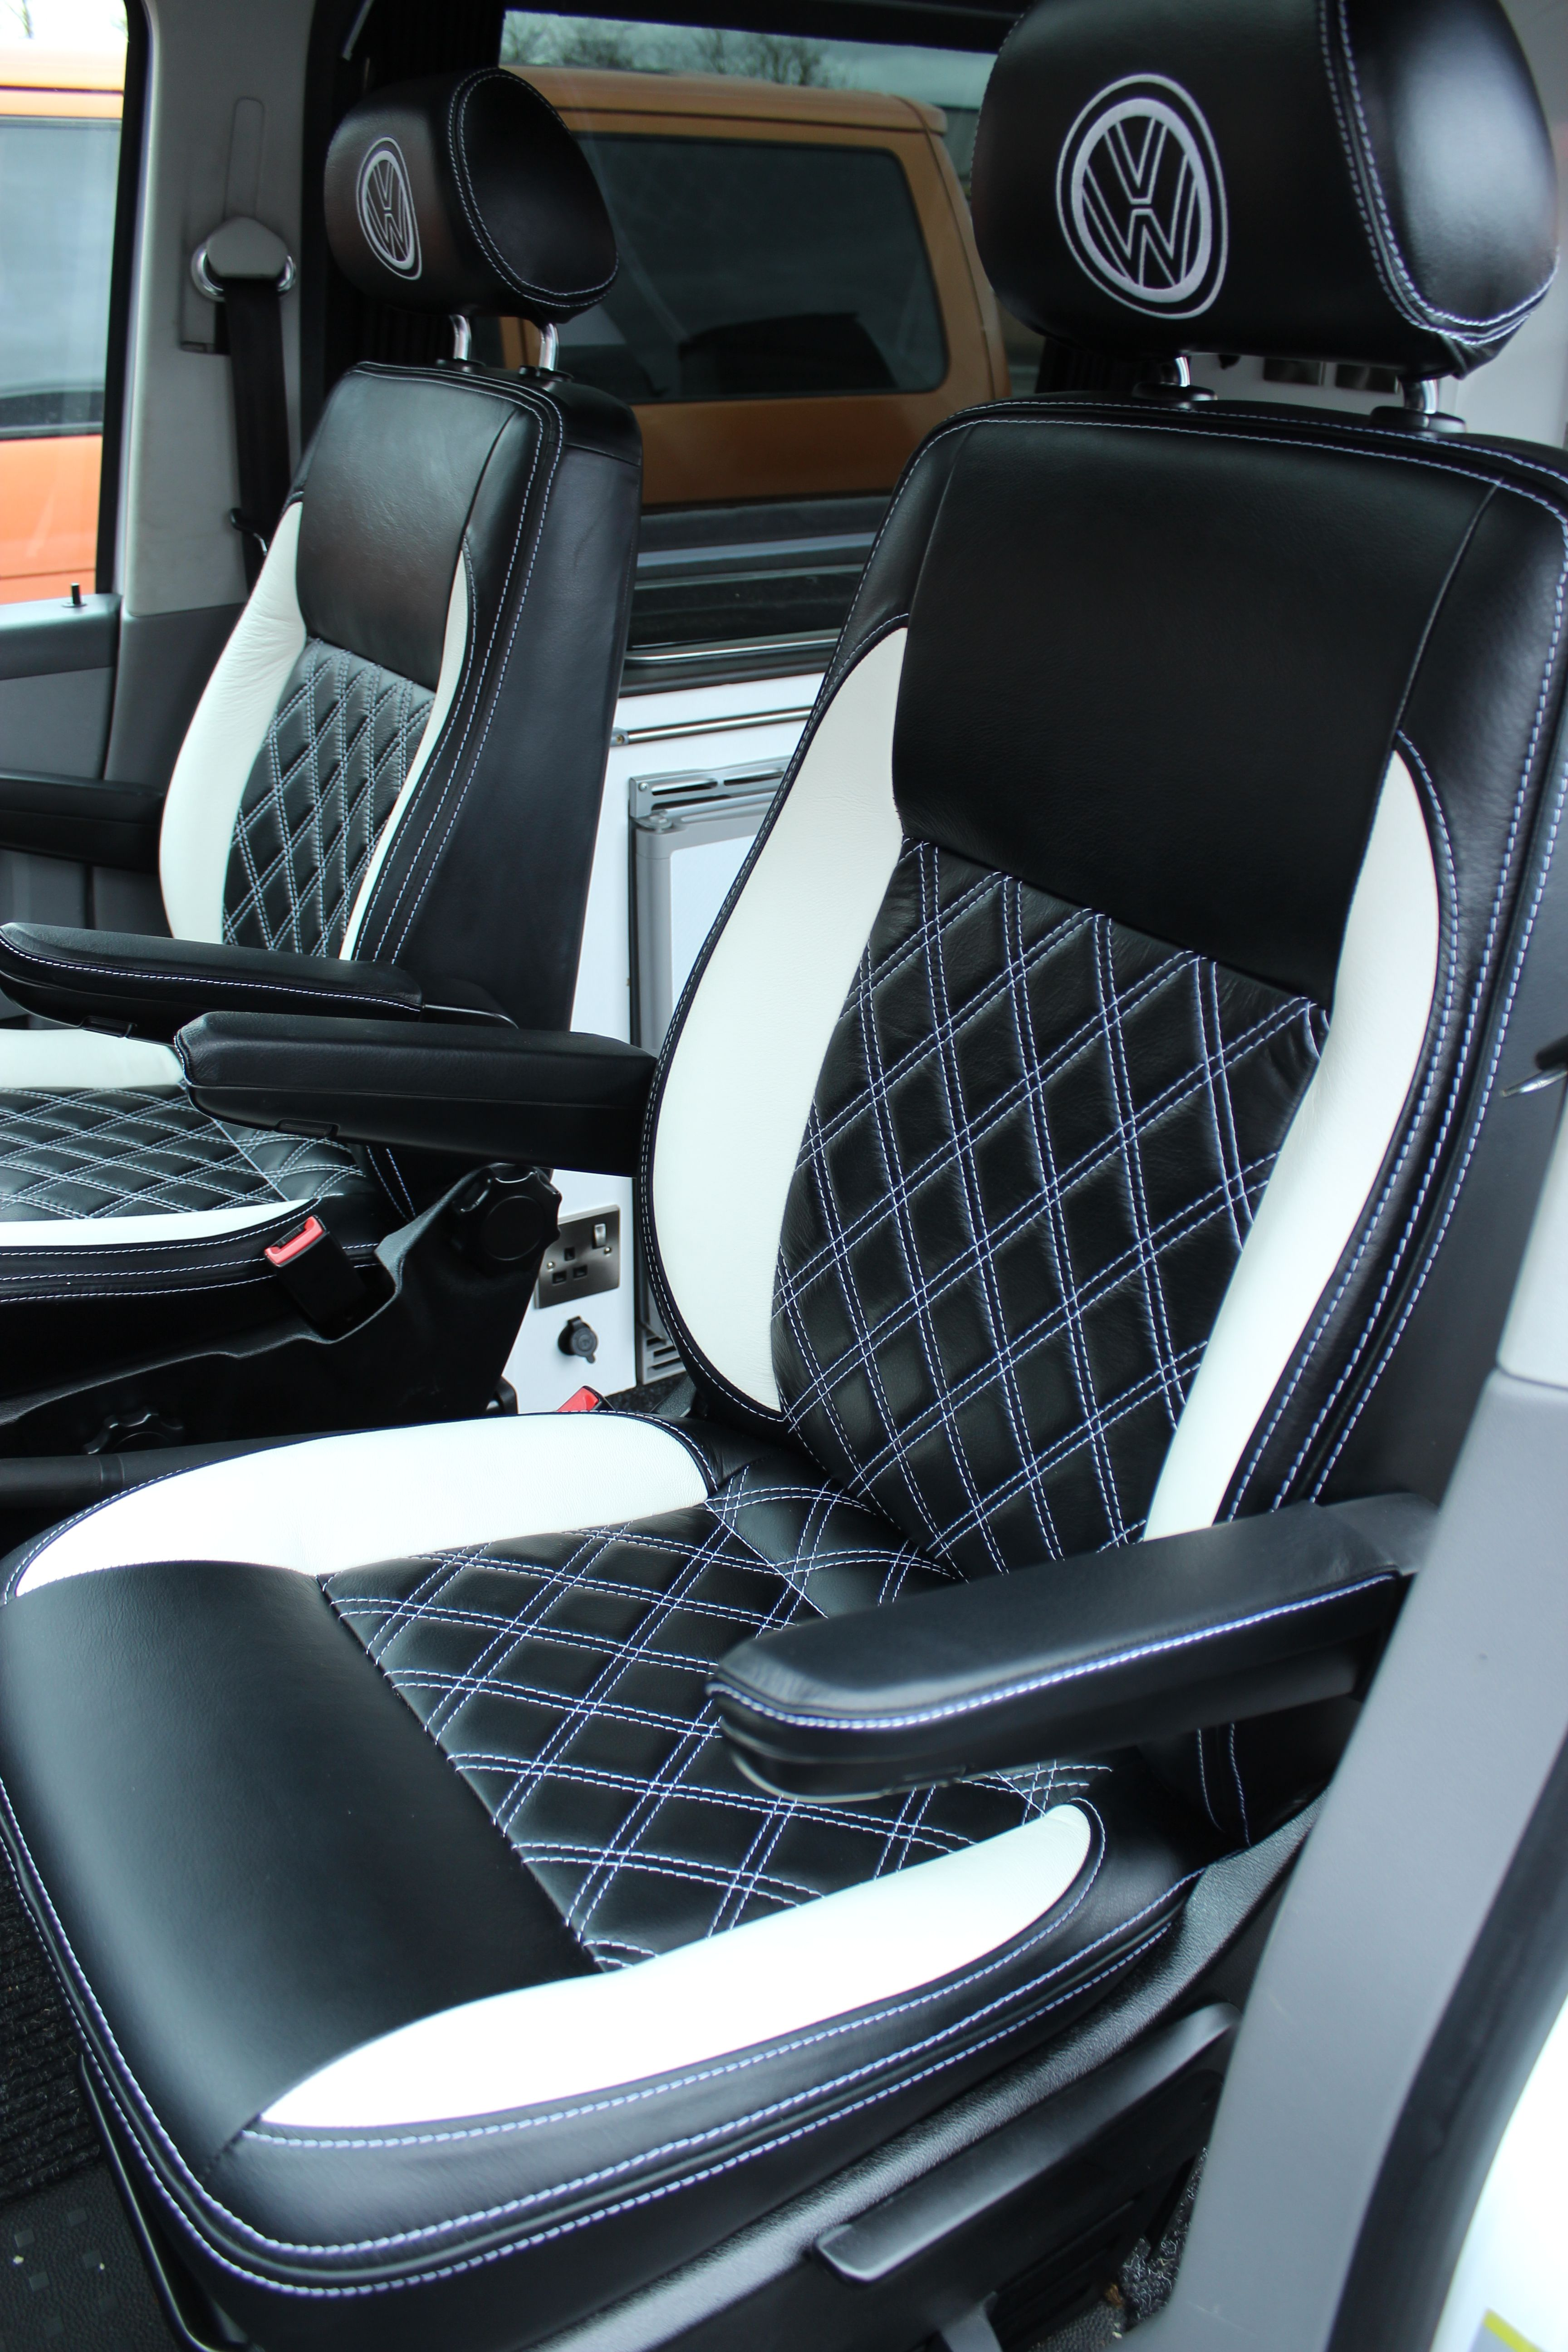 Fundas Para Asientos De Furgonetas This Is A Complete Leather Interior That Has Just Been